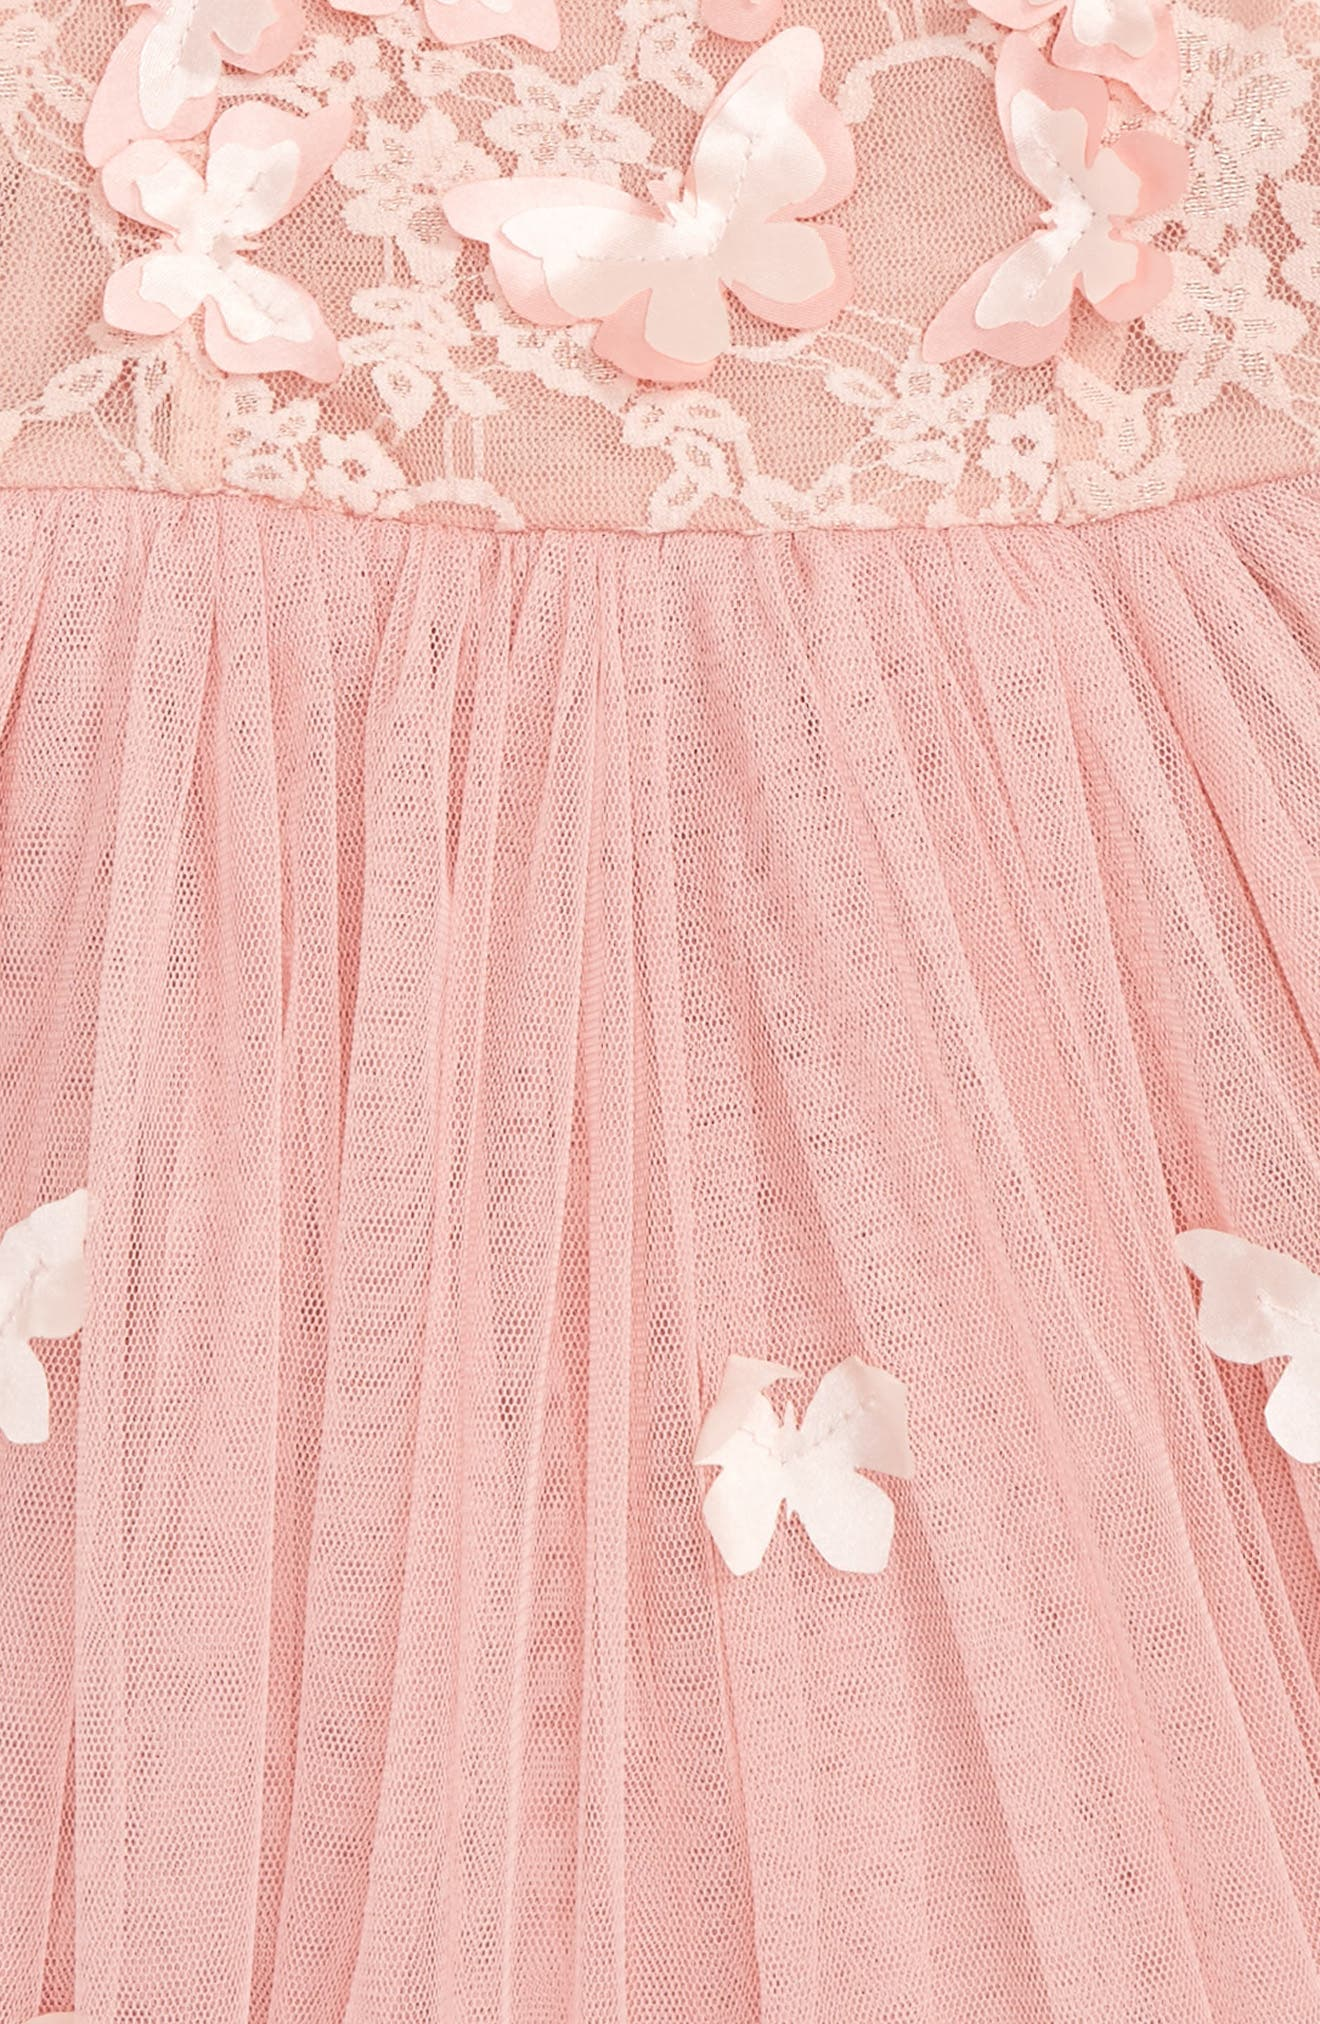 Butterfly Sleeveless Dress,                             Alternate thumbnail 2, color,                             DUSTY PINK